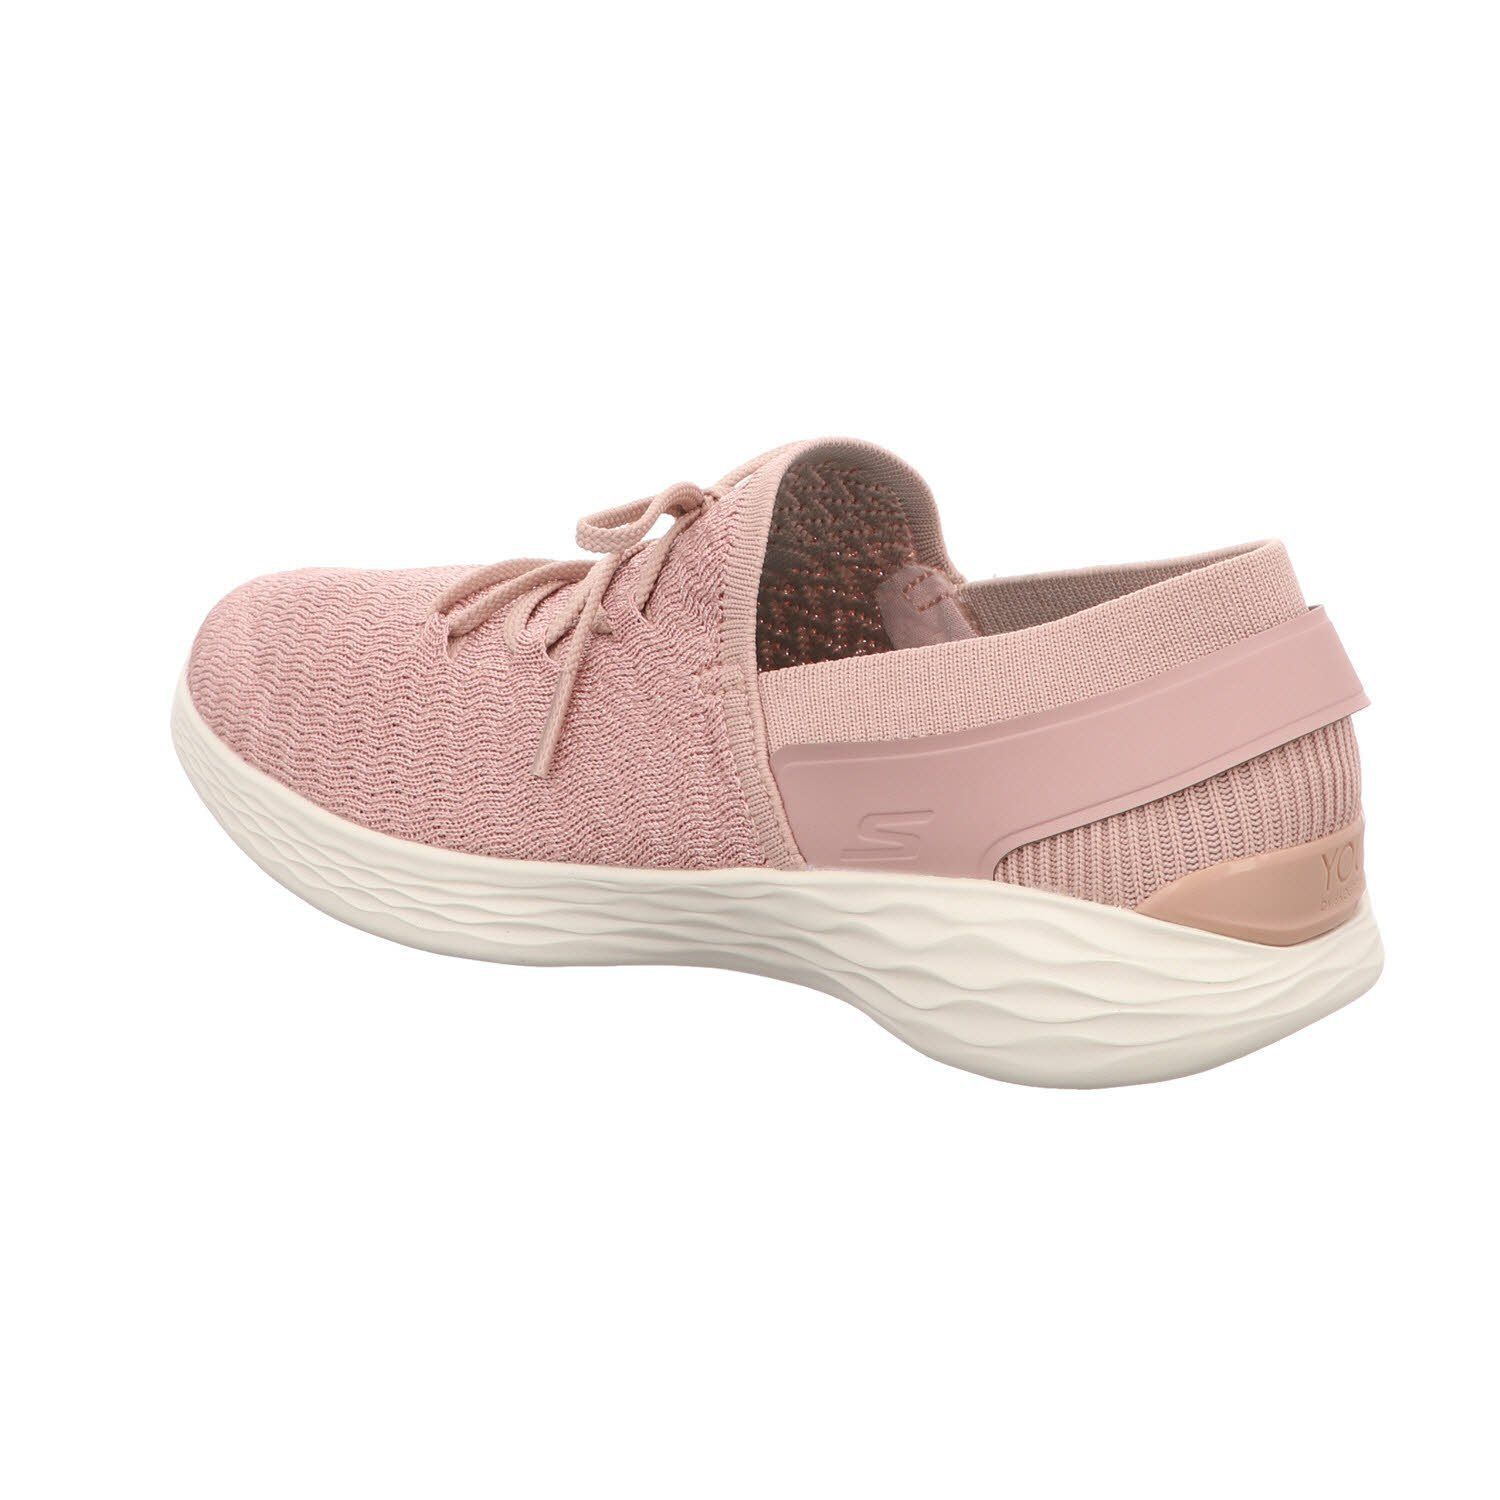 Pin on Women's Athletic Shoes